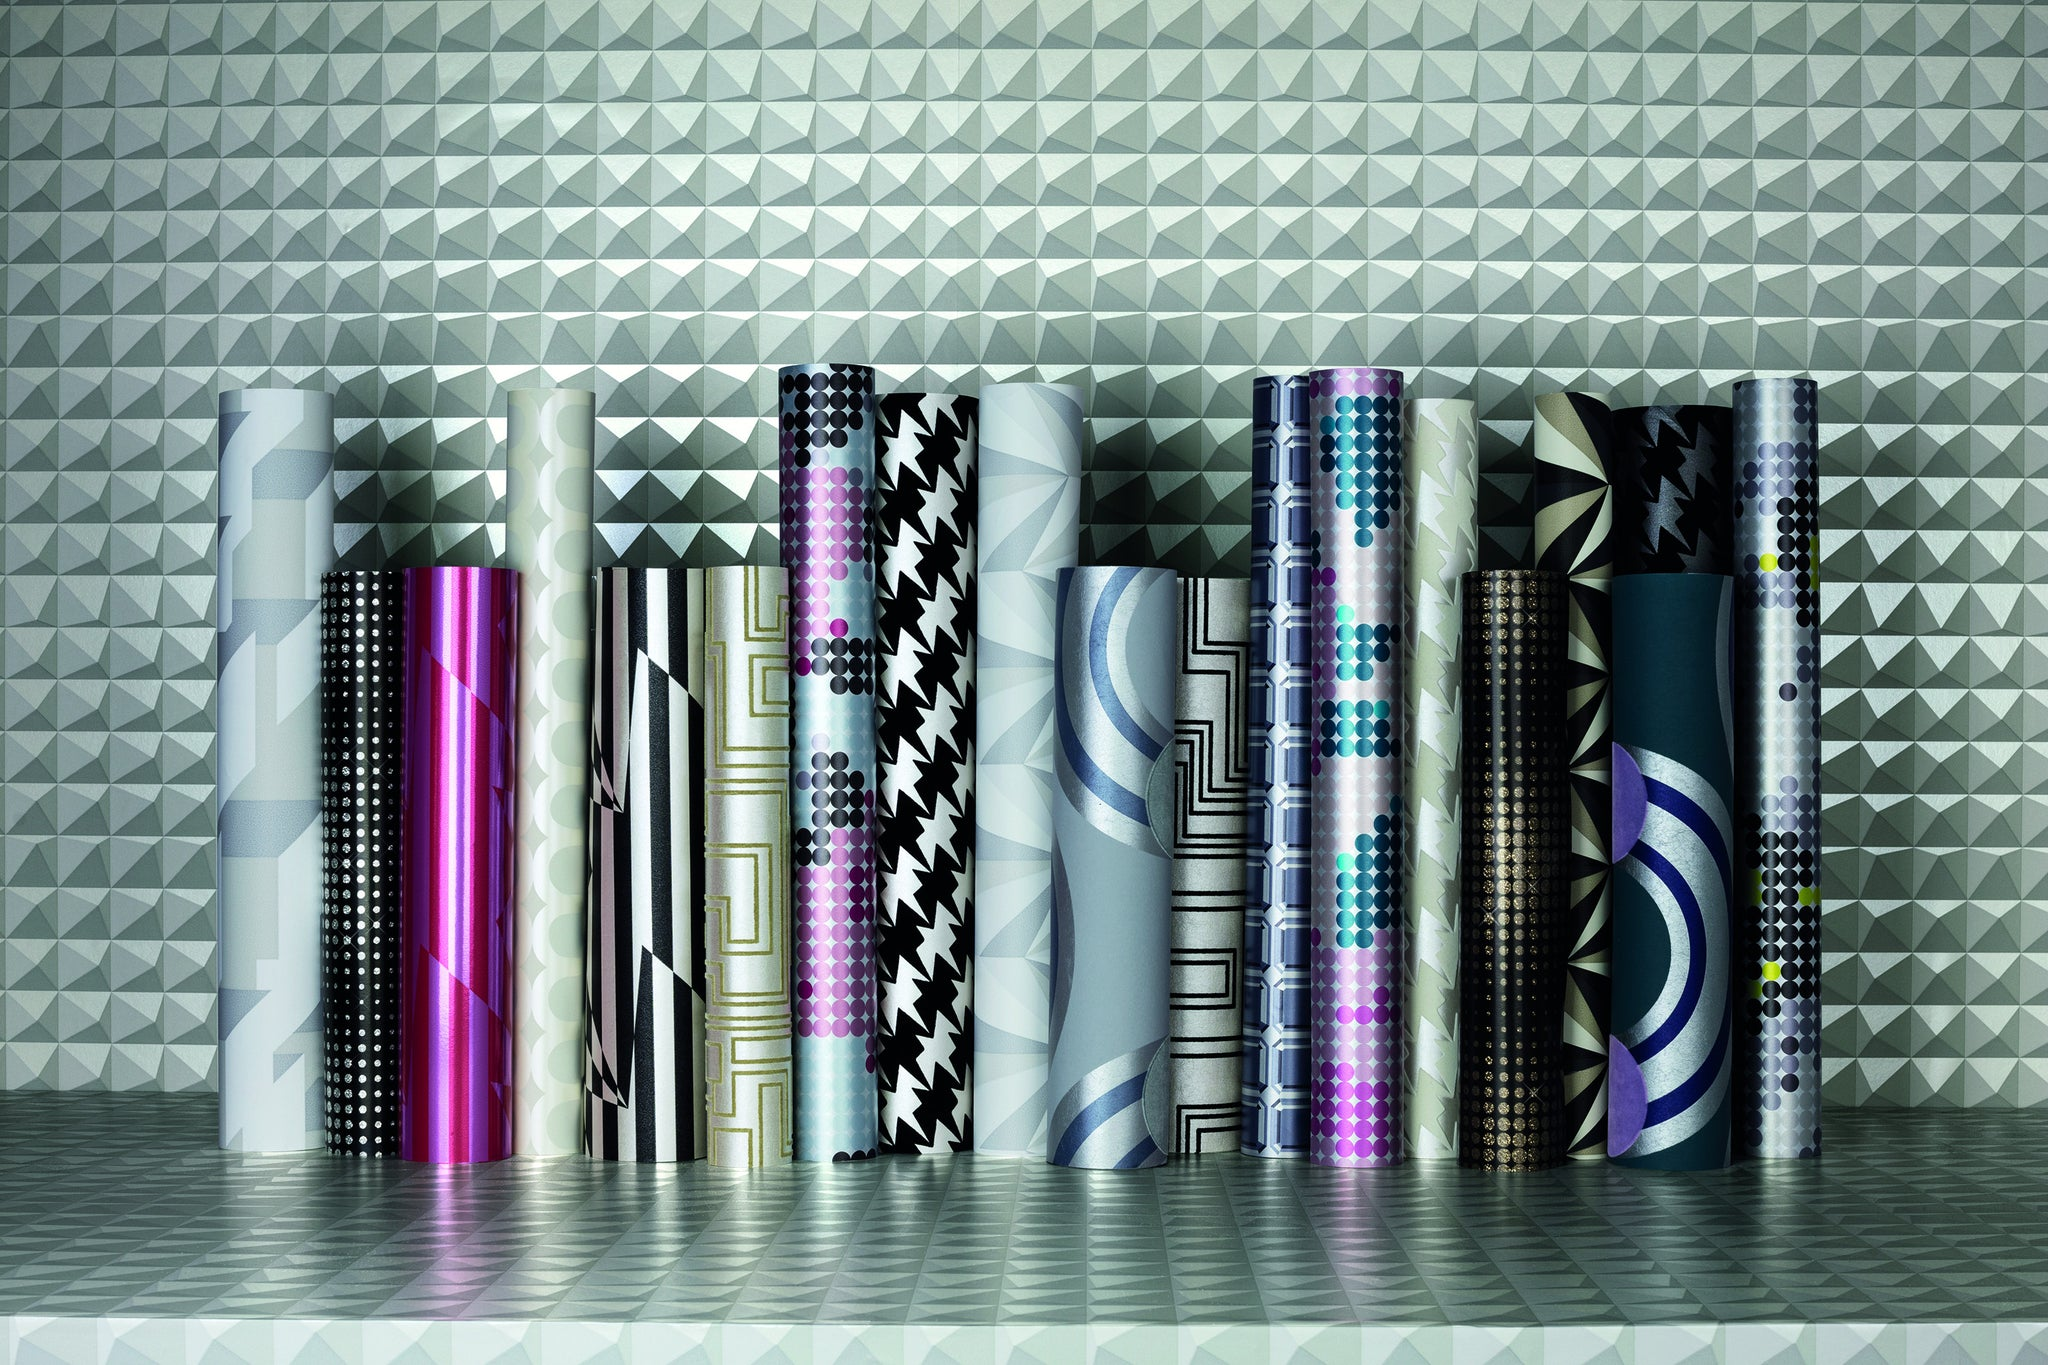 Kirkby Design and Eley Kishimoto wallpapers collection